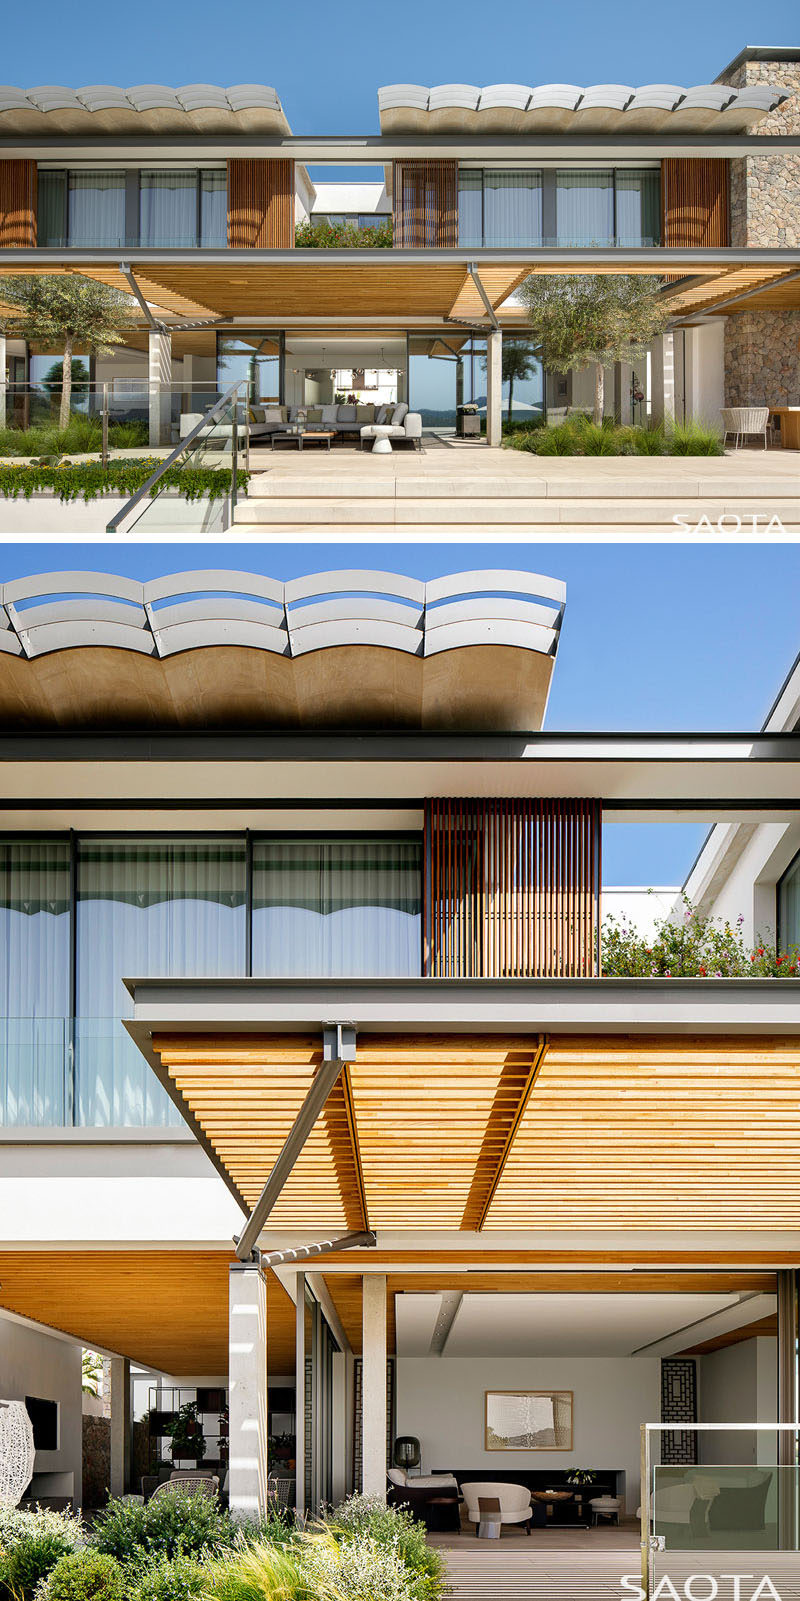 This modern house uses materials including plaster, stone, wooden pergolas and shutters, aluminium and large expanses of glass.#ModernHouse #BuildingMaterials #Architecture